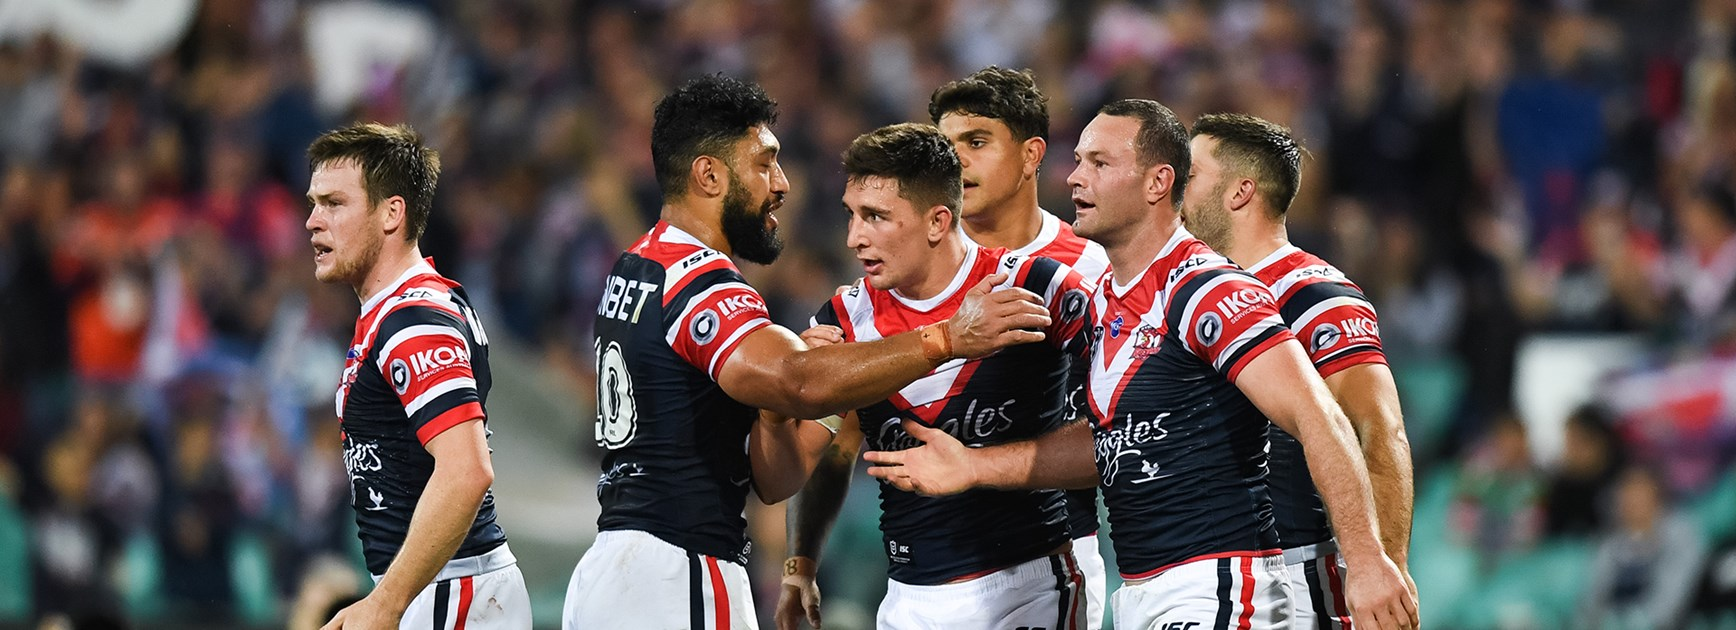 Sydney Roosters 2019 Stat Leaders